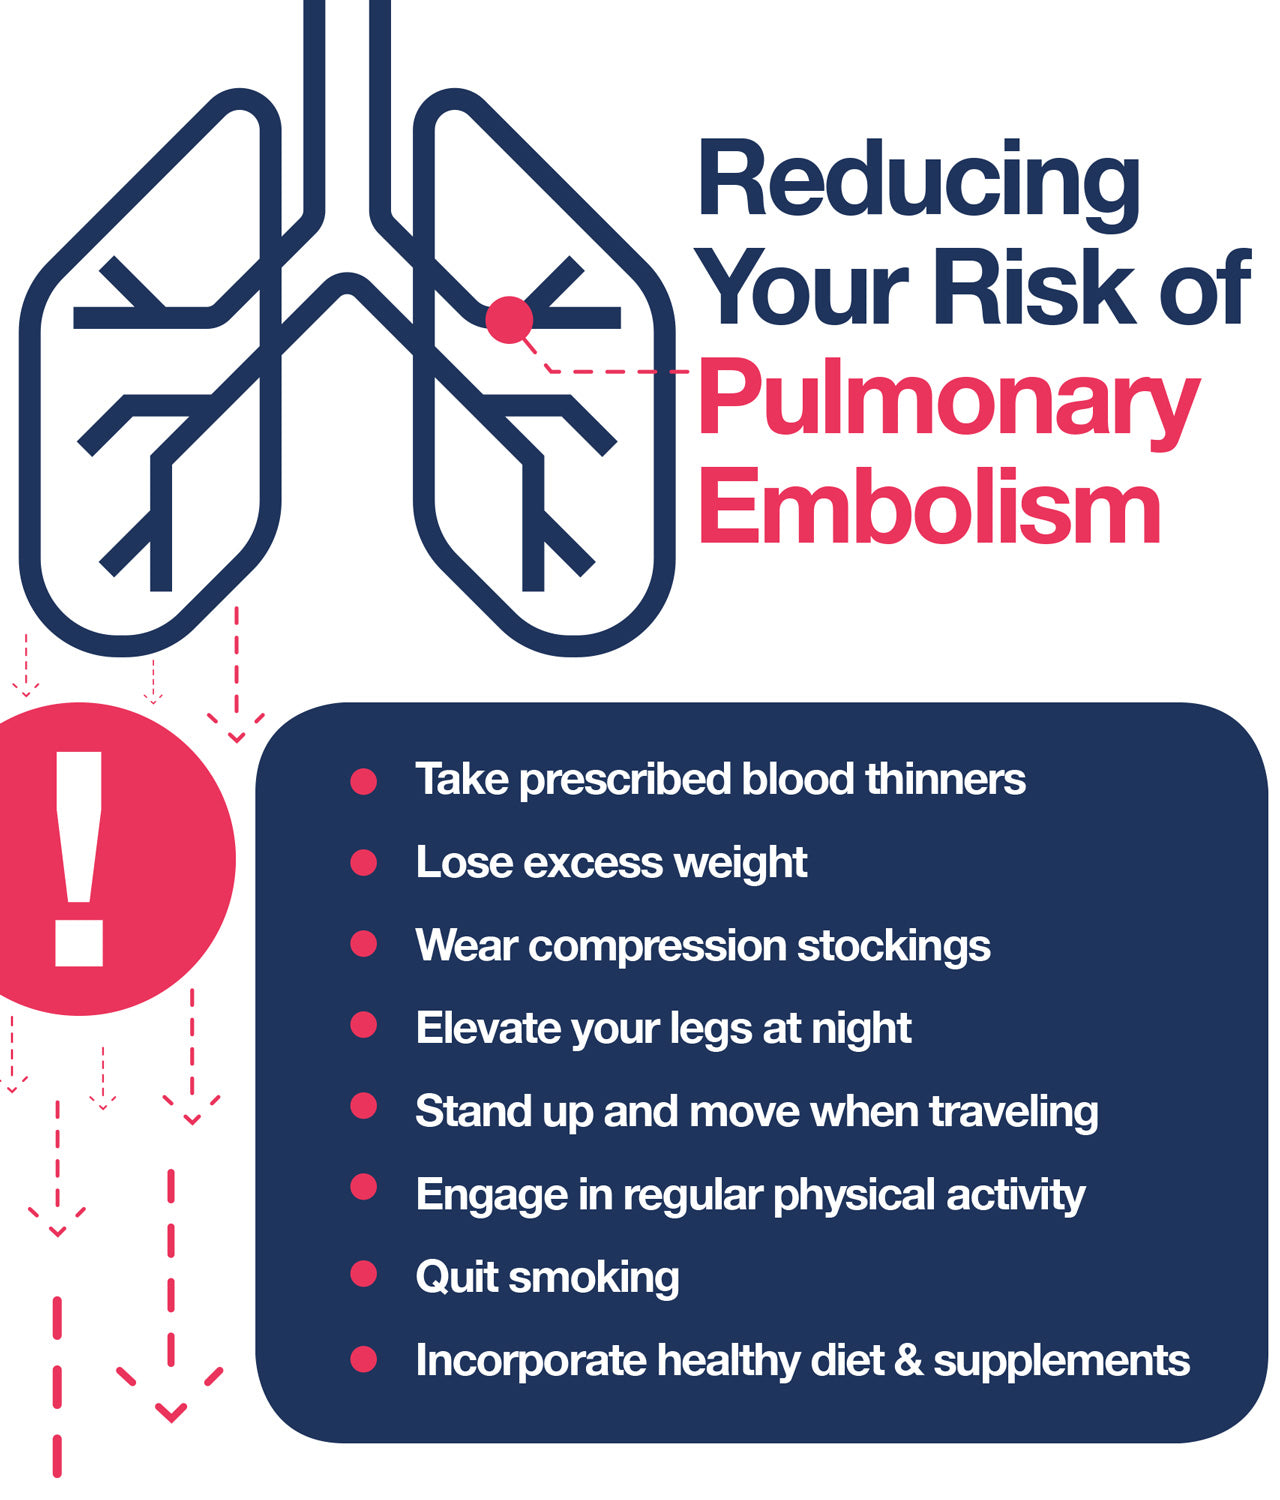 How to reduce your risk of pulmonary embolism